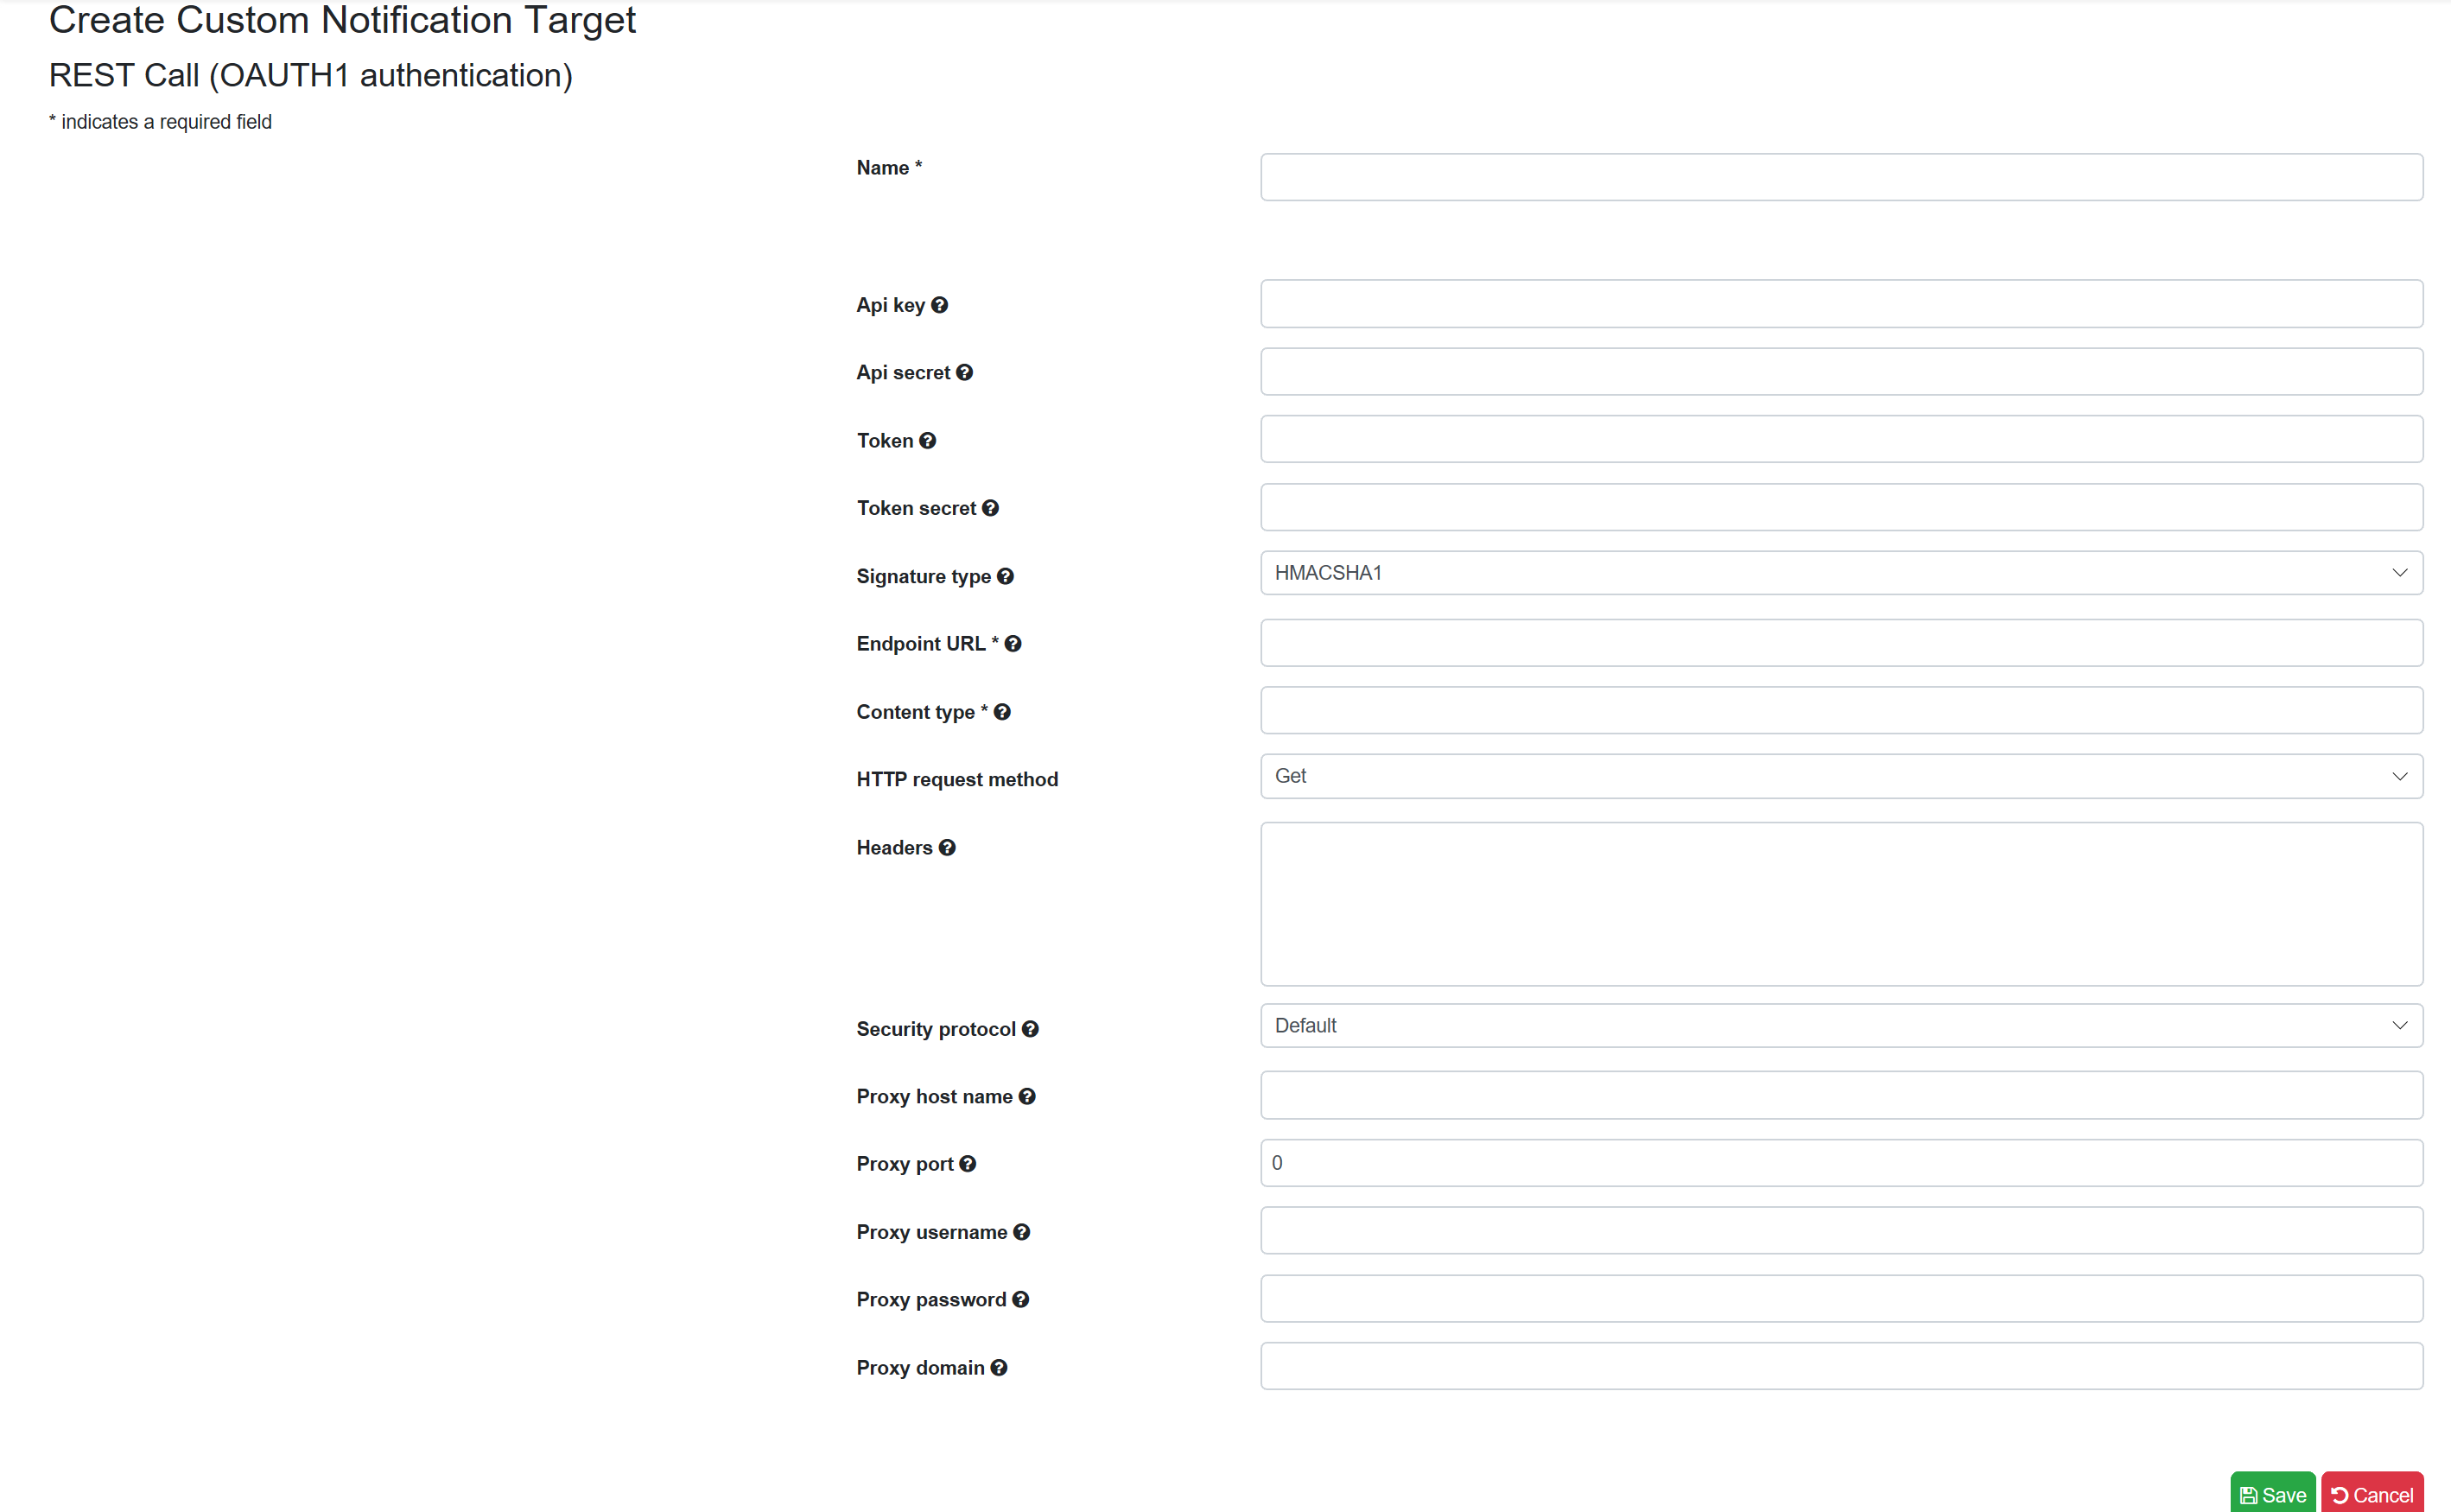 SentryOne Test Create REST Call (OAuth1 authentication) Target form